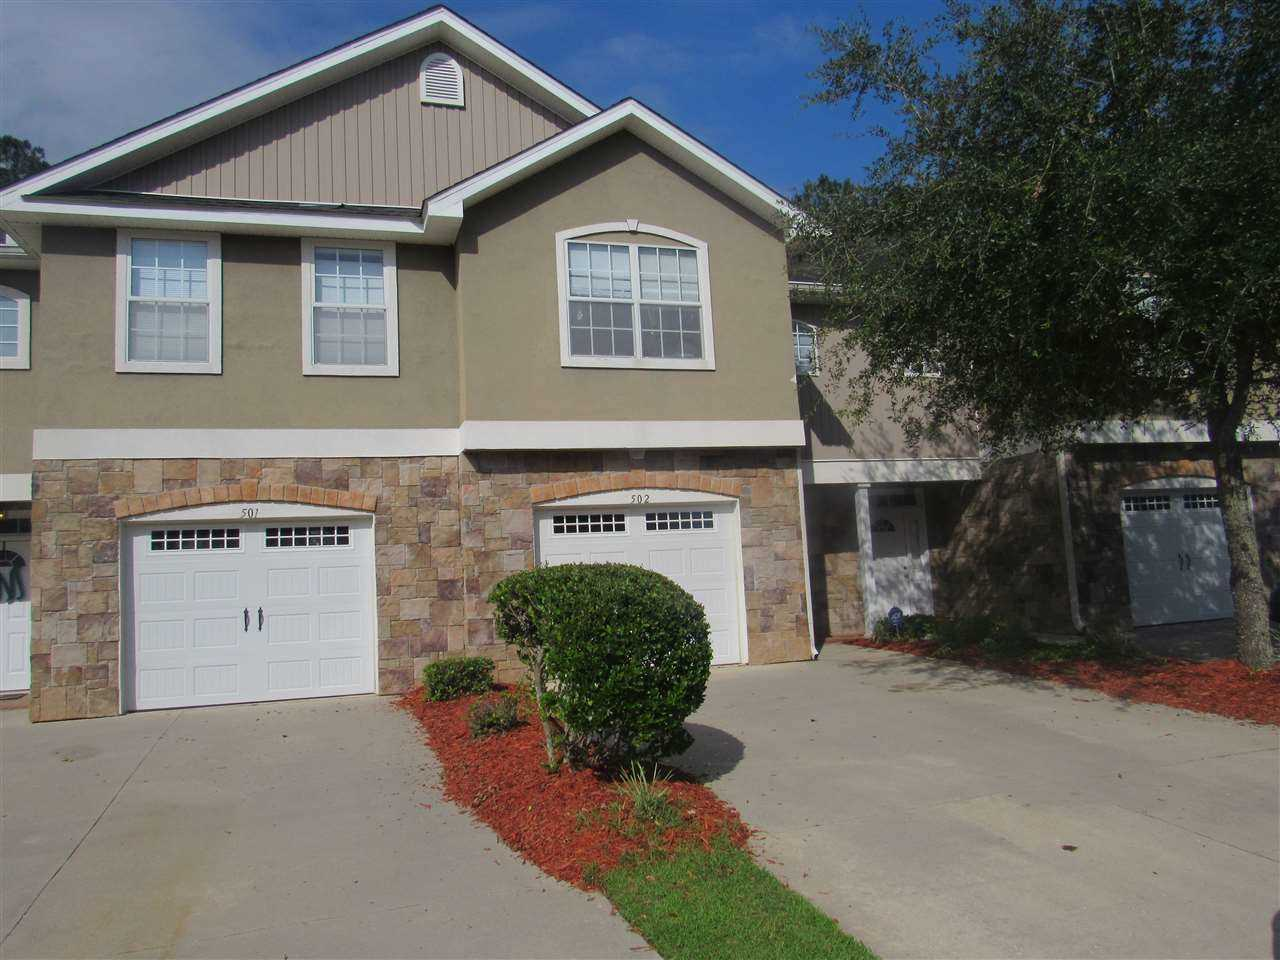 1575 Paul Russell Road Tallahassee, FL 32301 in Brighton Place Condominiums Photo 1